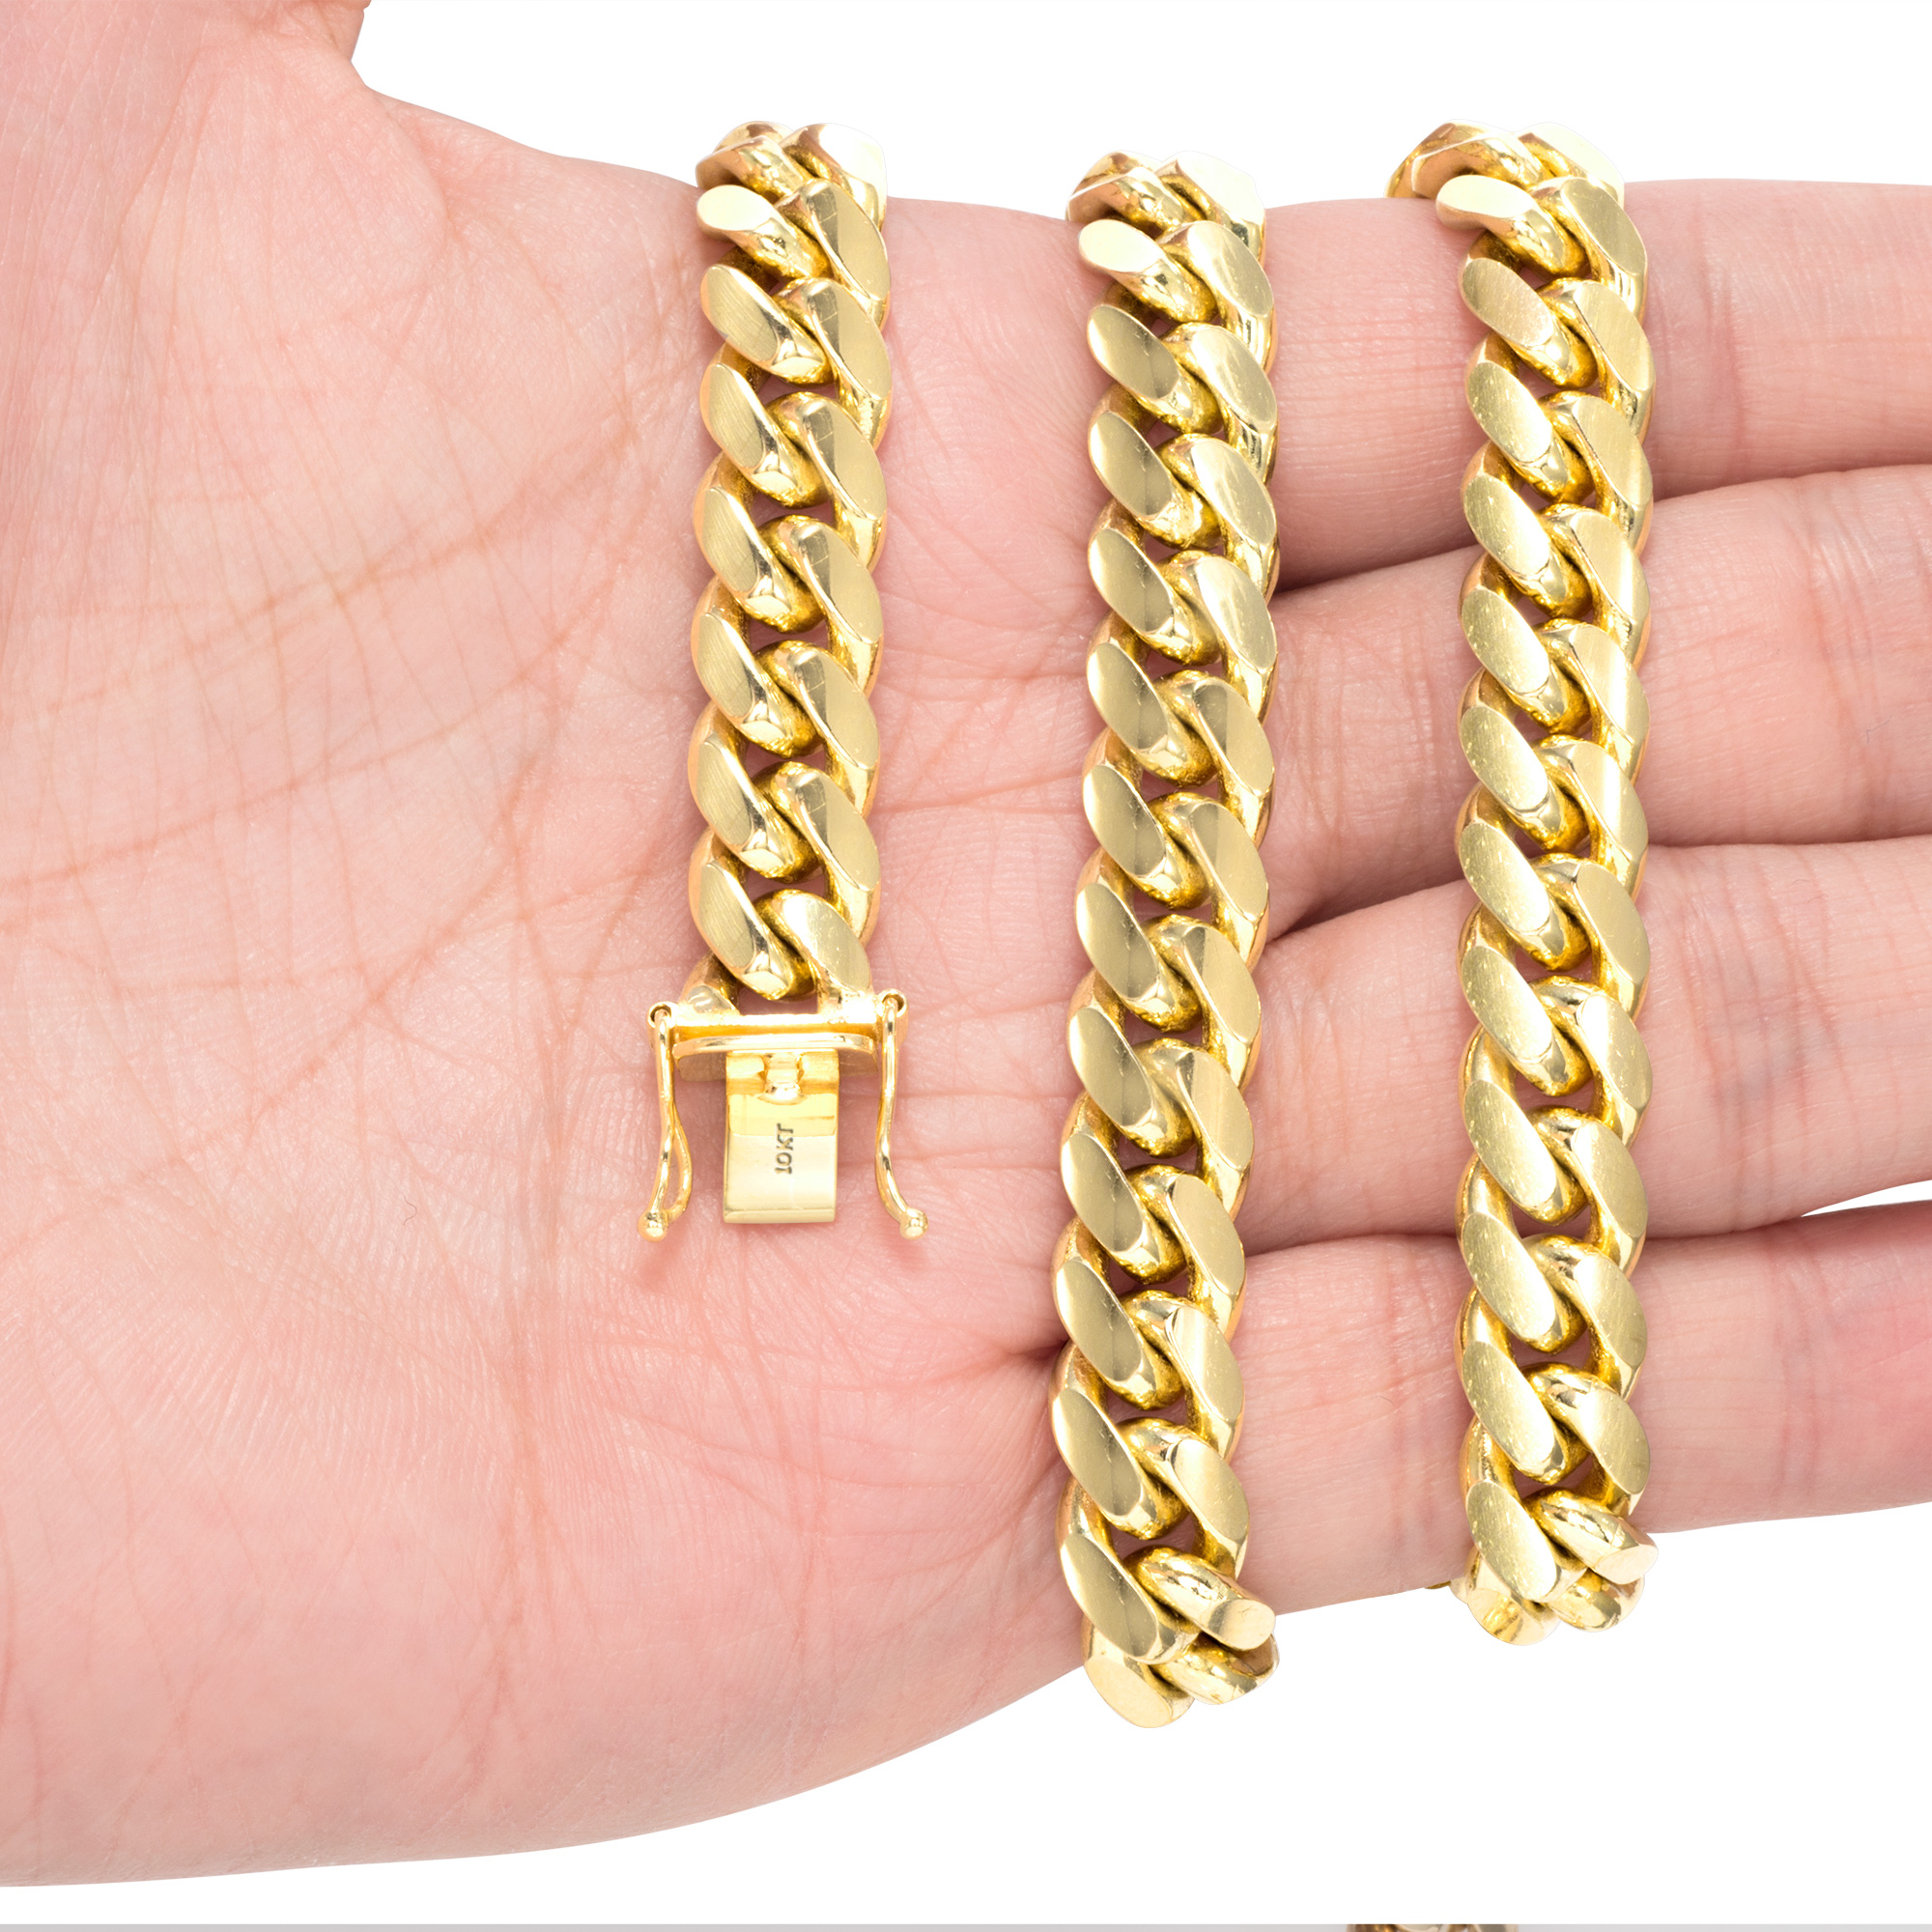 10K-Yellow-Gold-Solid-2-7mm-10mm-Miami-Cuban-Link-Chain-Necklace-Bracelet-7-034-30-034 thumbnail 28